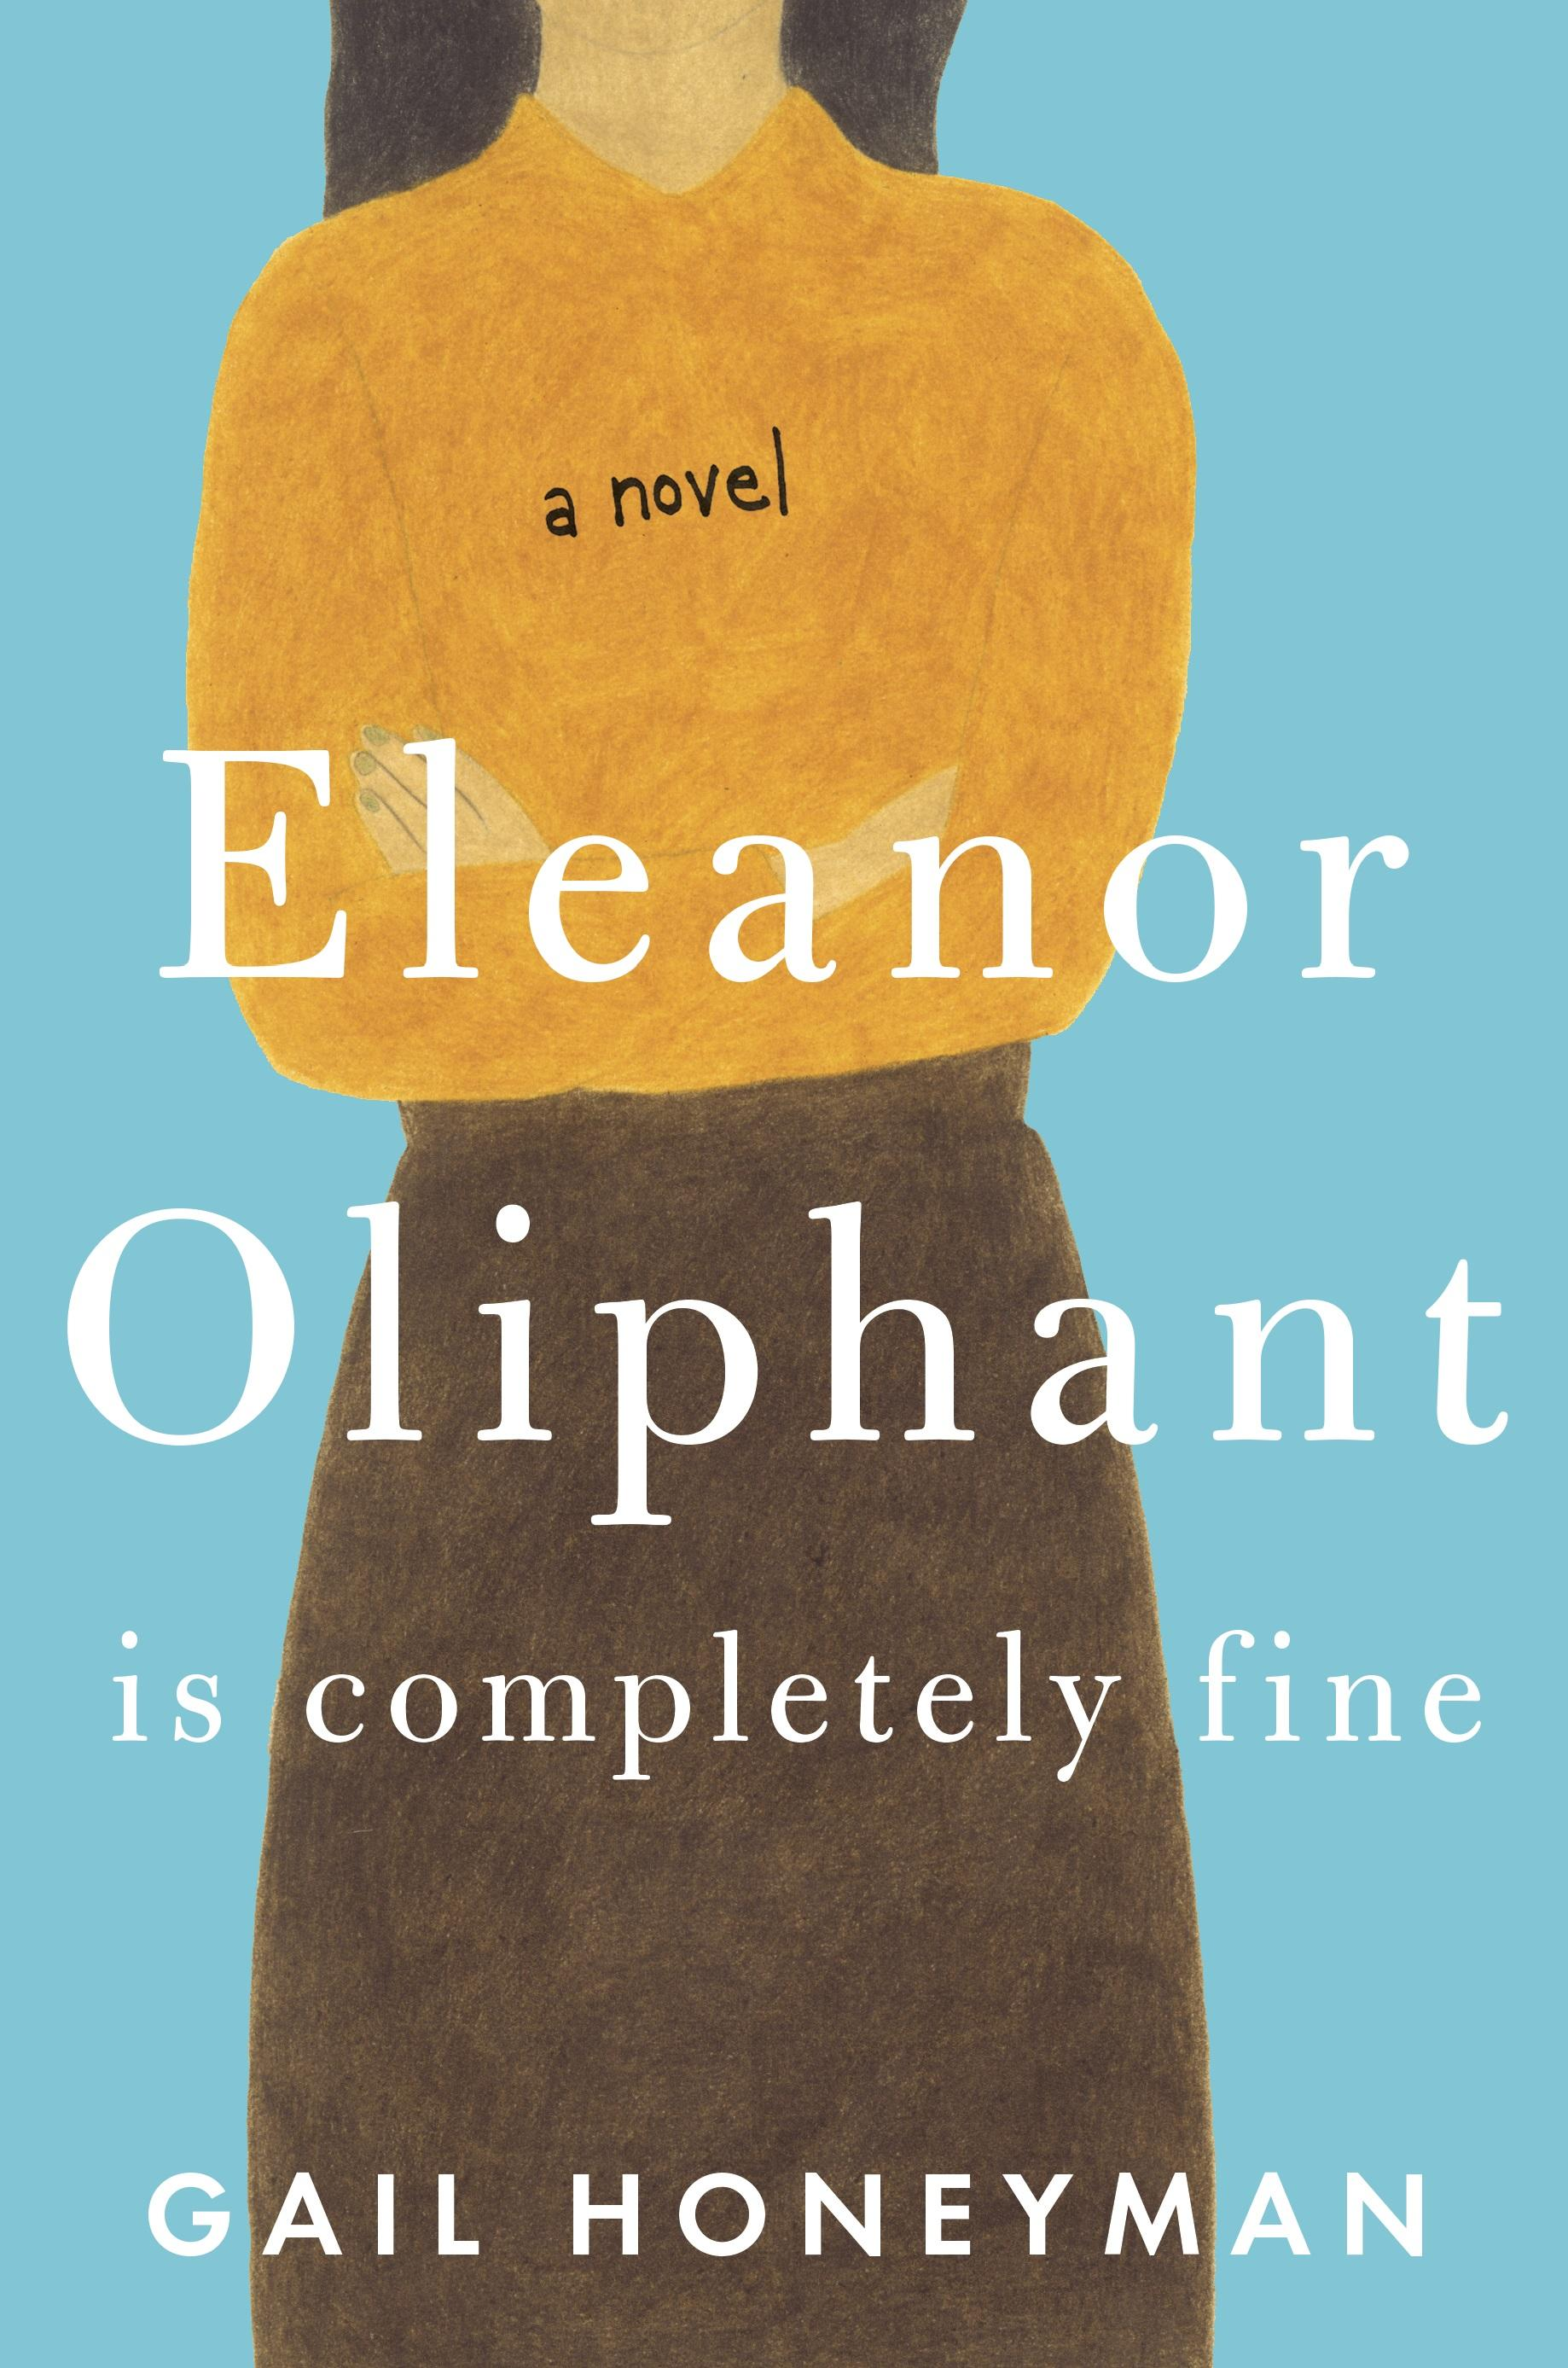 Eleanor Oliphant Is Completely Fine (Novel/Literary Fiction) by Gail Honeyman / Image courtesy of Pamela Dorman Books // Published: 6.17.17